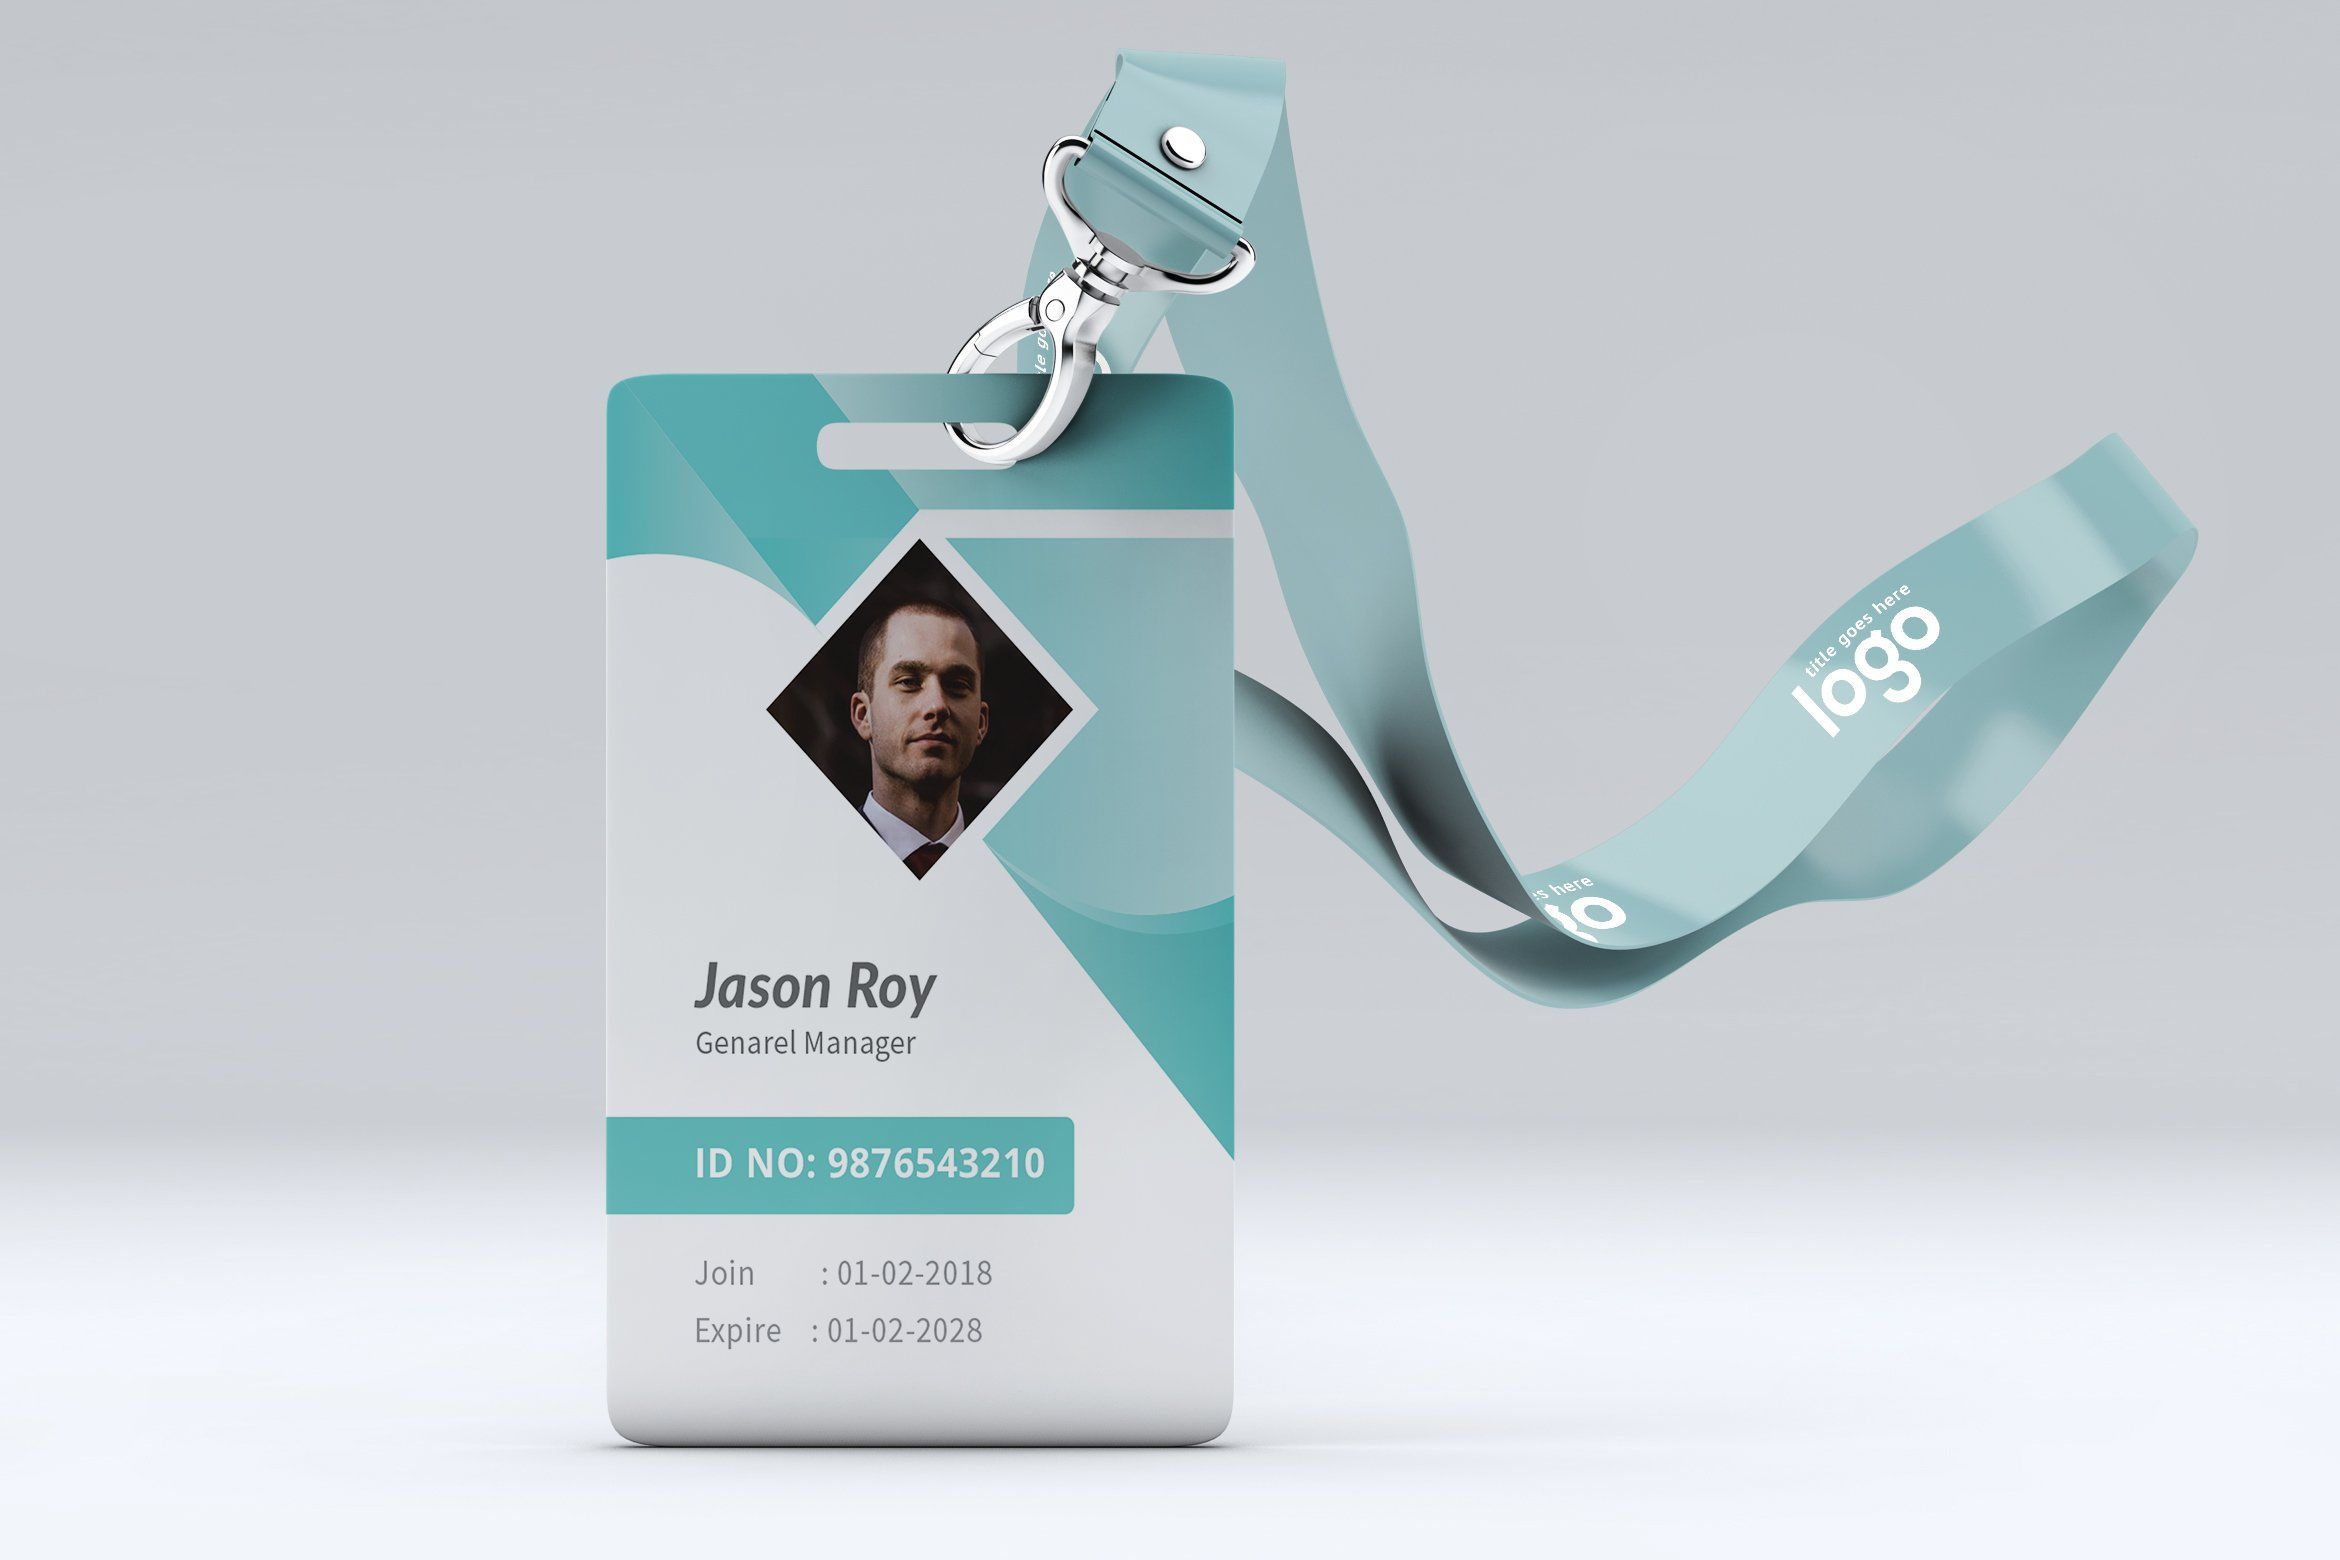 004 Excellent Employee Id Card Template Sample  Free Download Psd WordFull